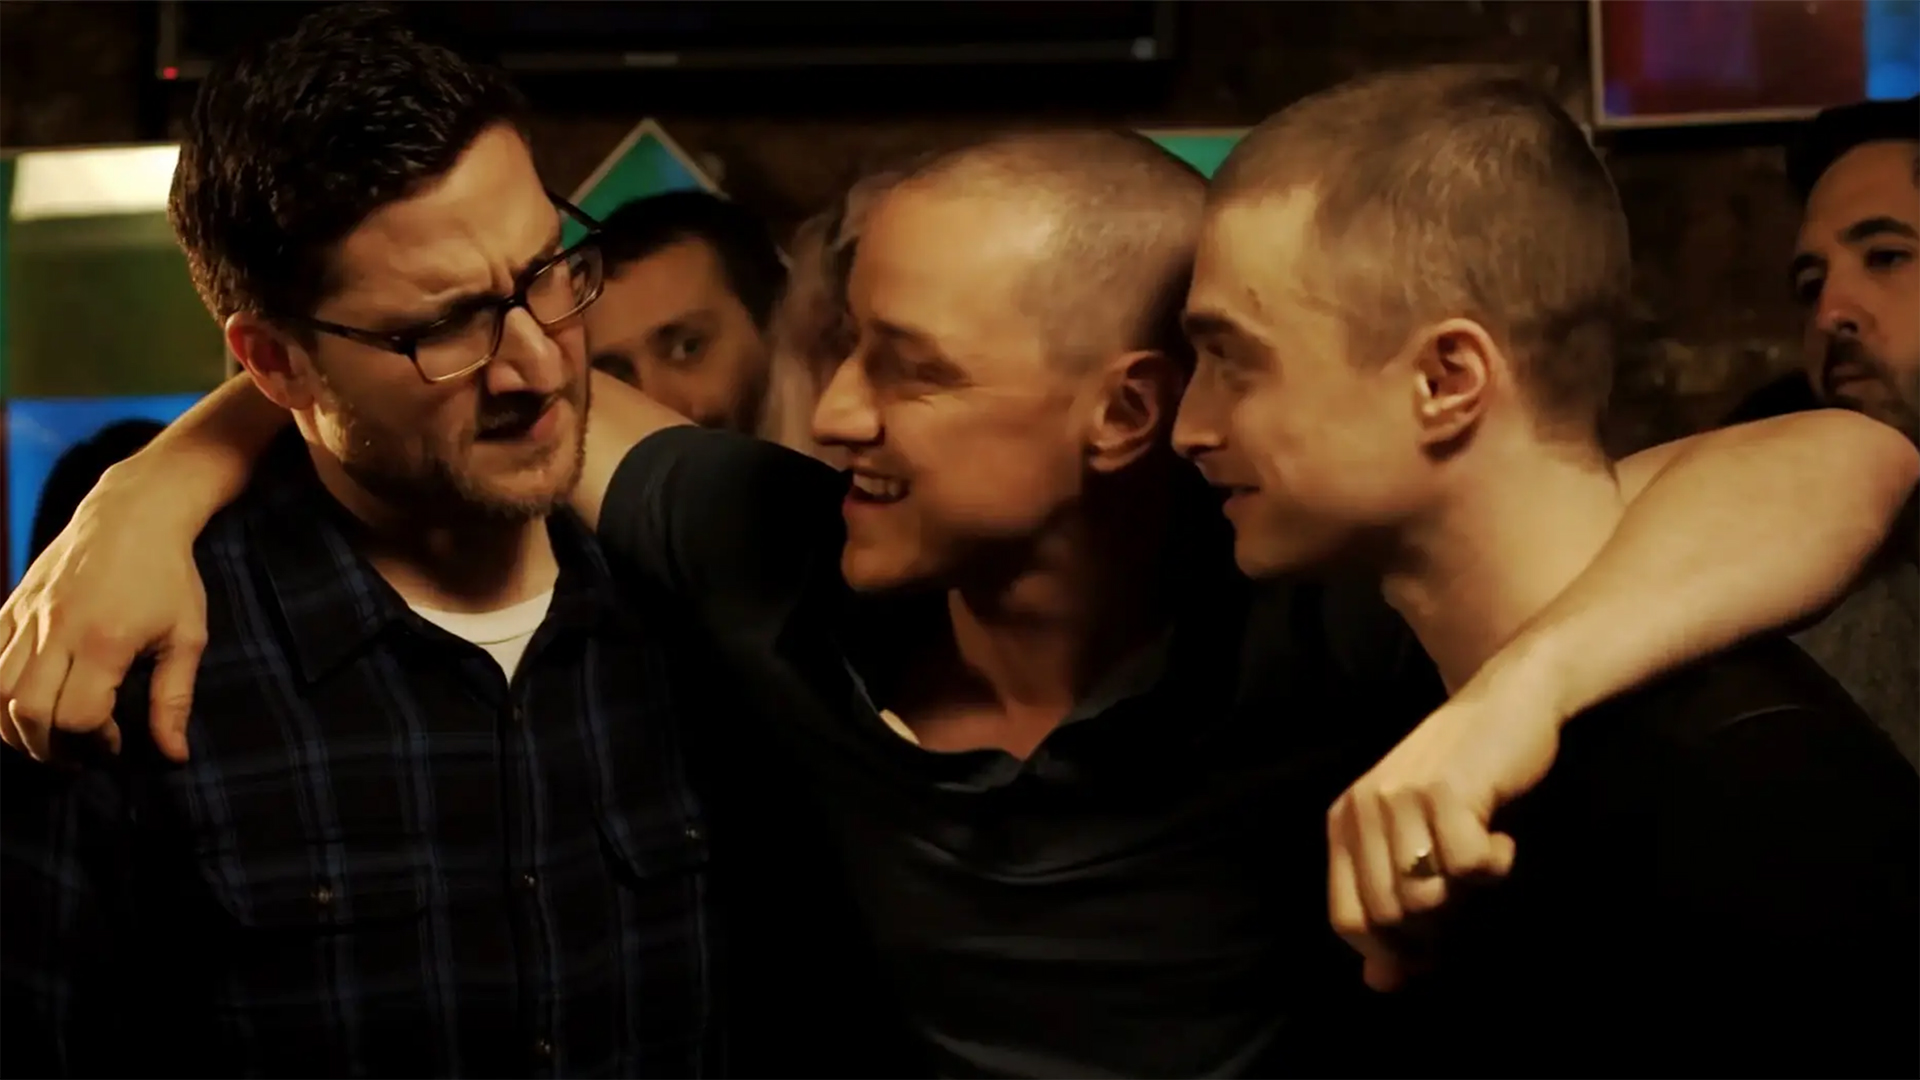 MTV After Hours with Josh Horowitz - James McAvoy & Daniel Radcliffe